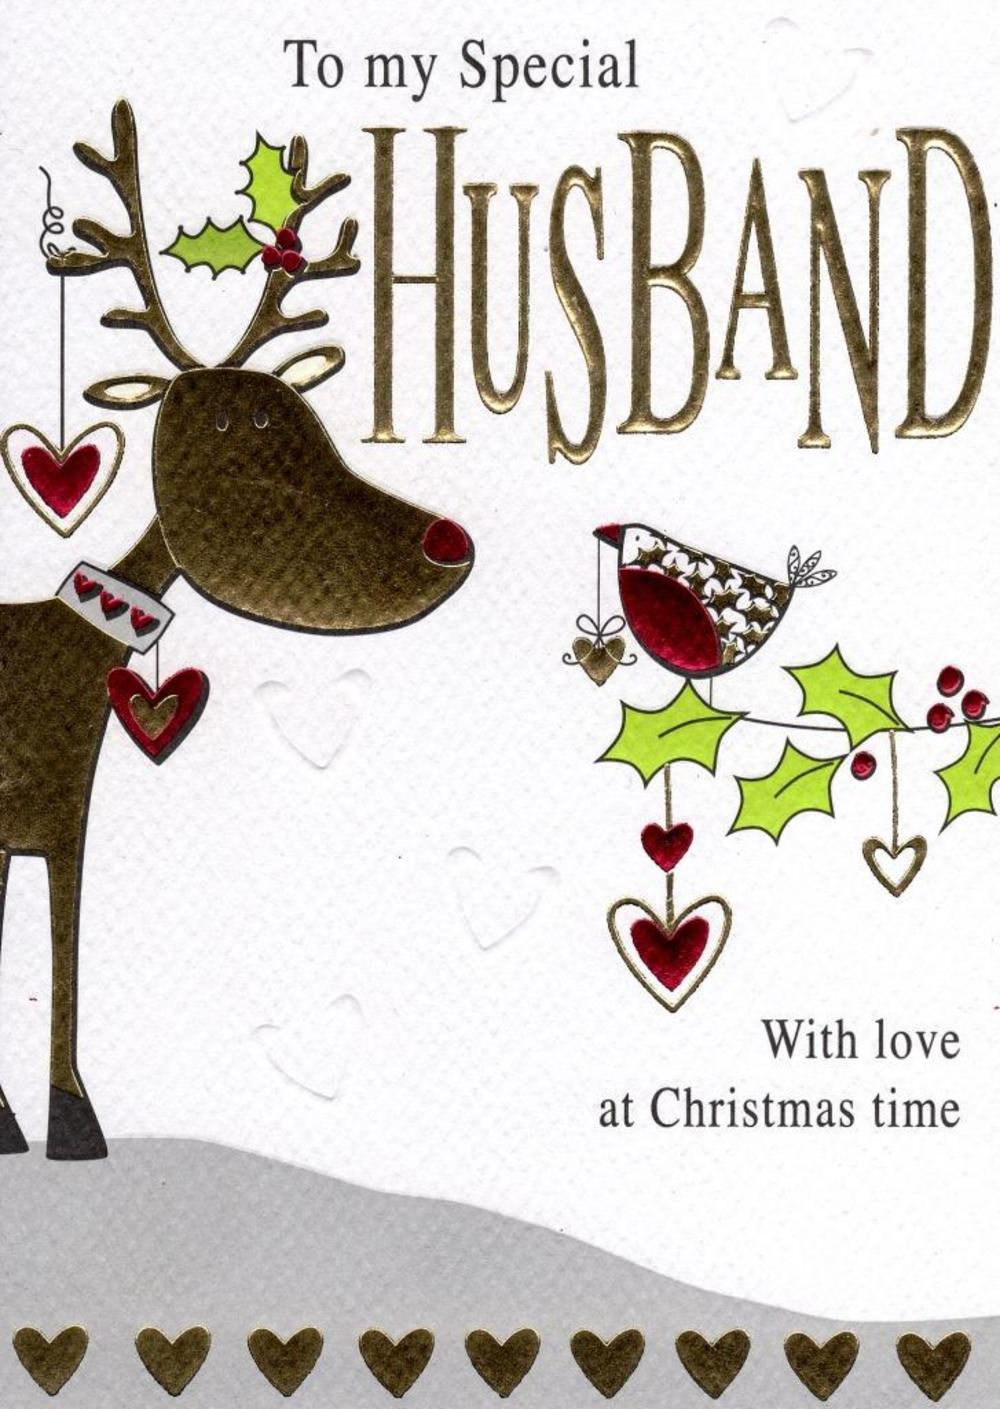 To My Special Husband Christmas Card